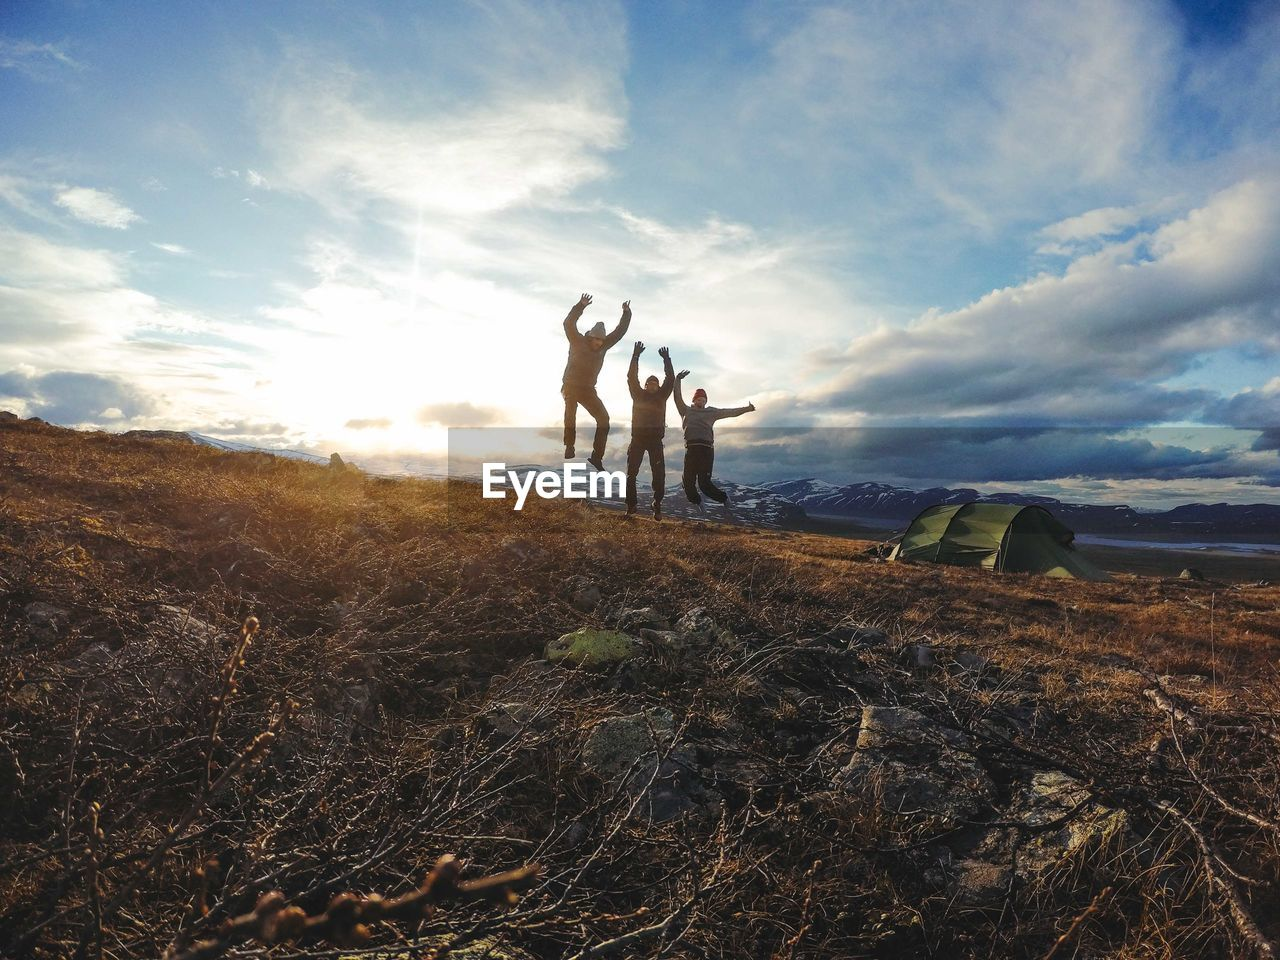 sky, cloud - sky, land, group of people, real people, field, nature, beauty in nature, leisure activity, scenics - nature, togetherness, lifestyles, men, non-urban scene, adult, grass, landscape, environment, tranquility, women, human arm, outdoors, arms raised